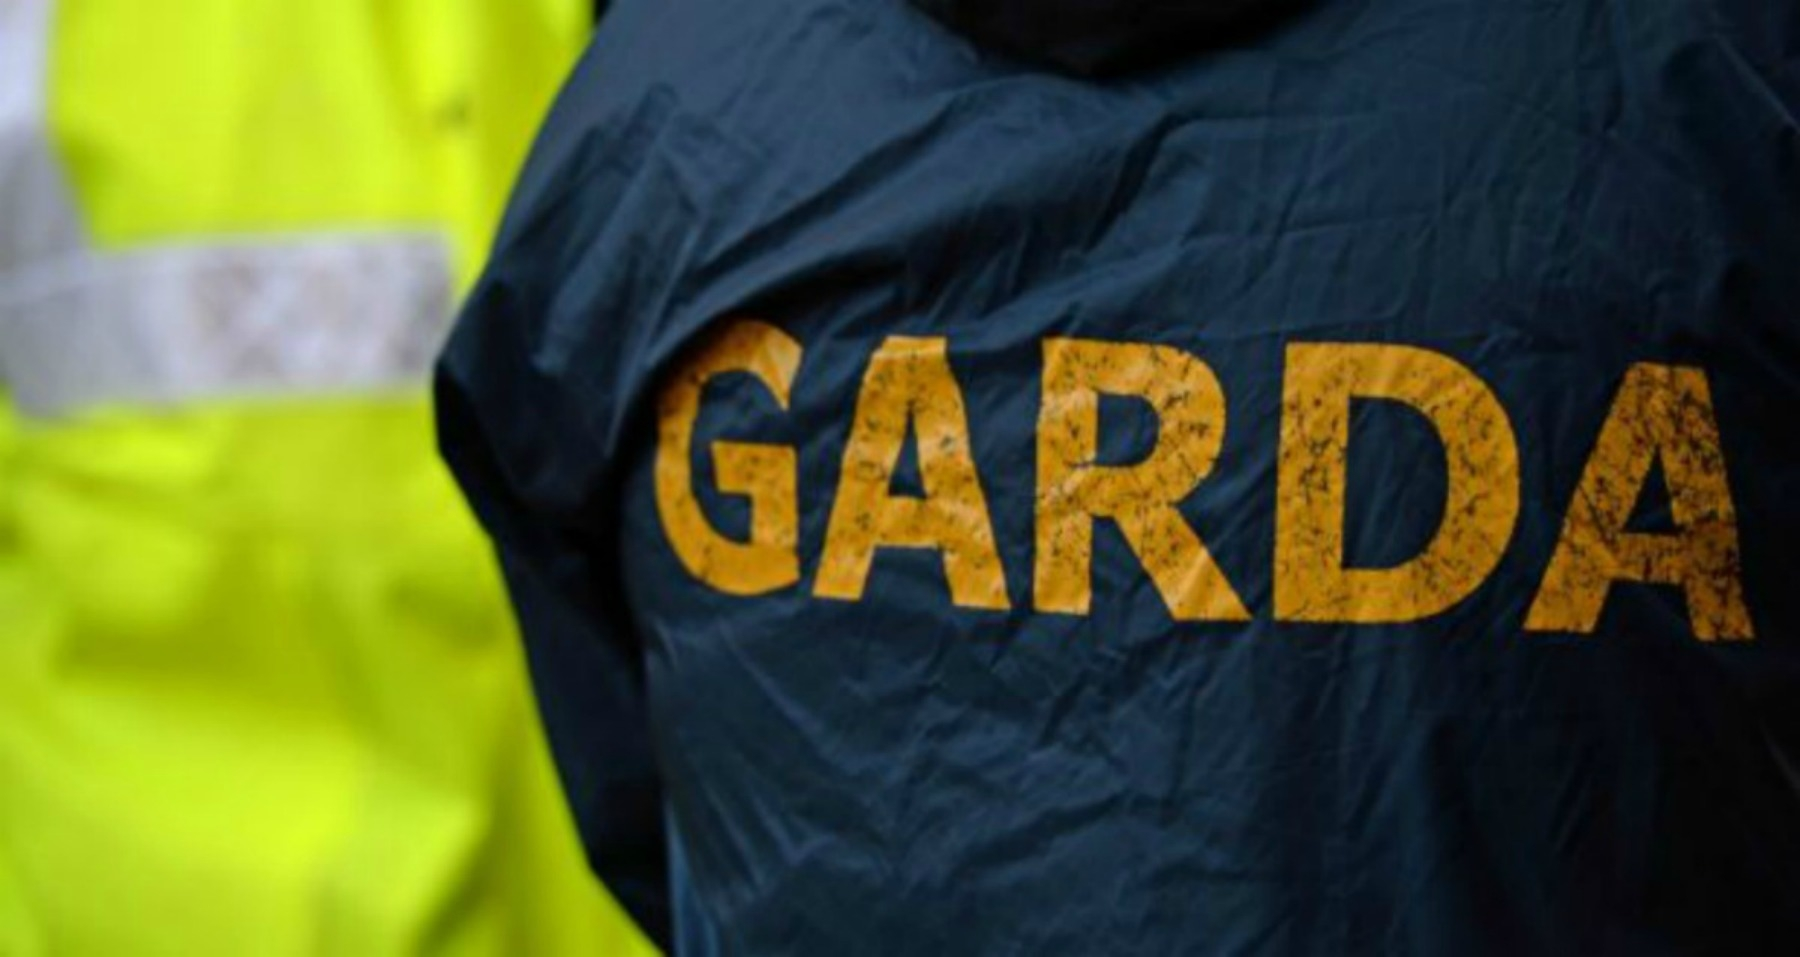 DUBLIN: Body of woman found after planned search by Gardai